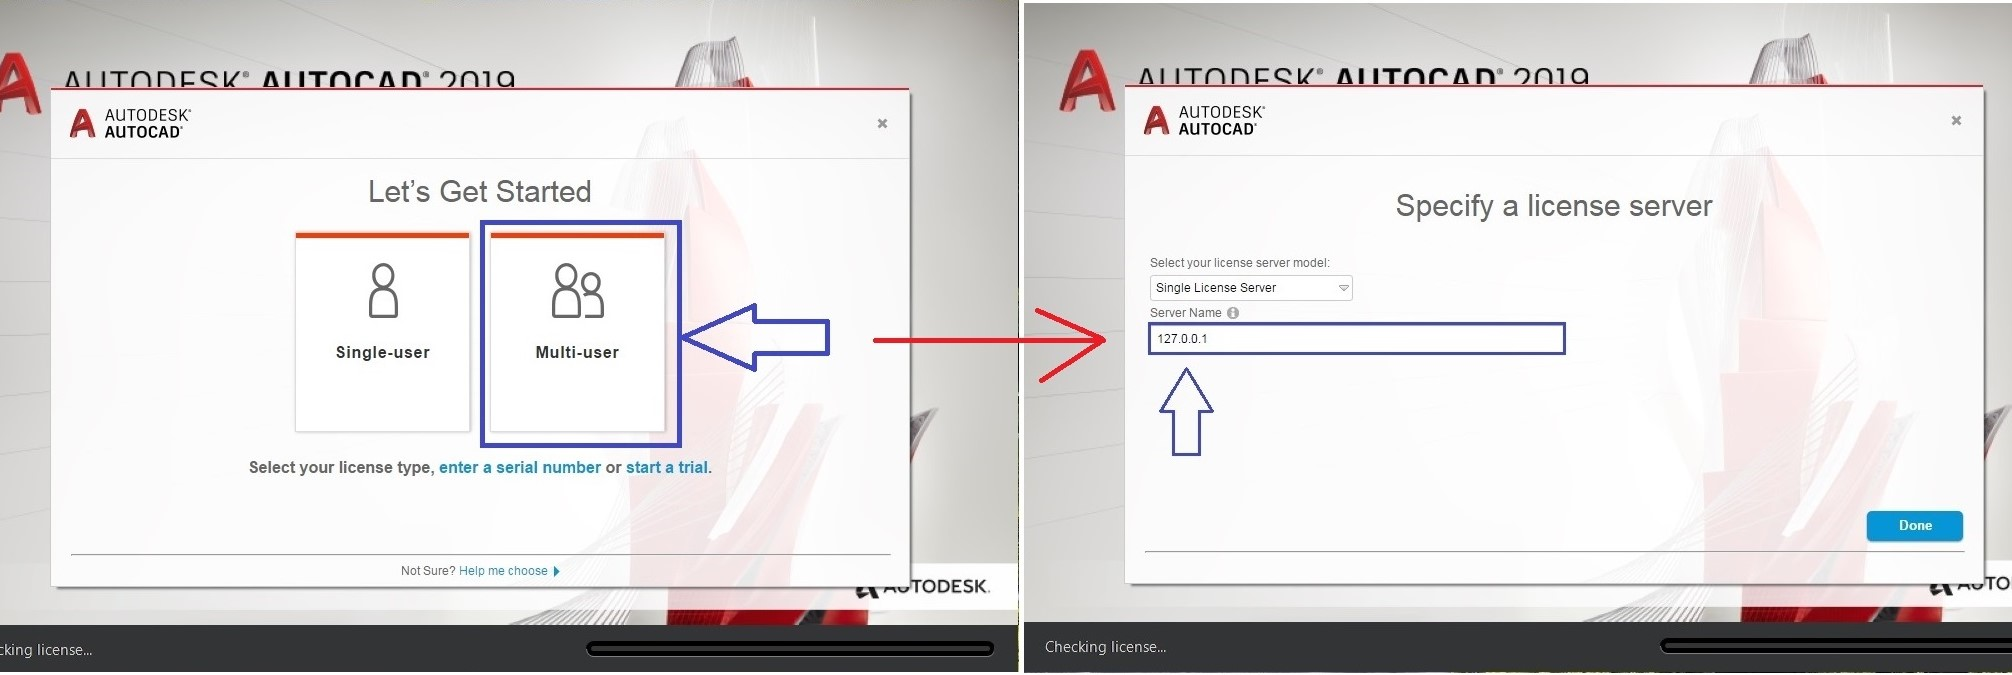 download AutoCAD 2019